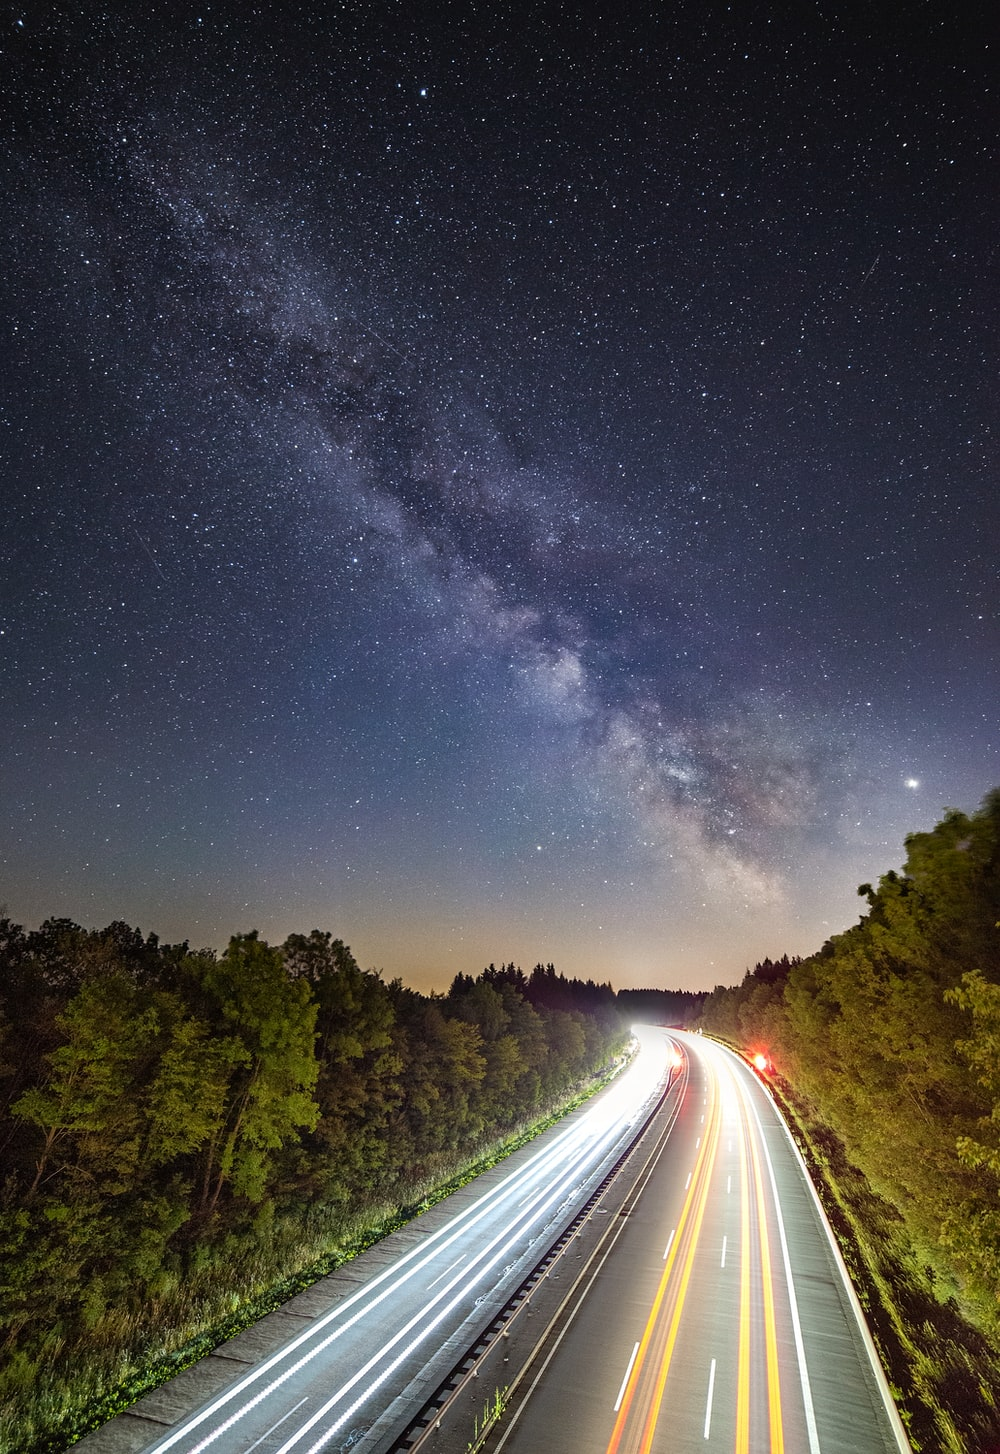 time lapsed photography of vehicles on road during nighttime